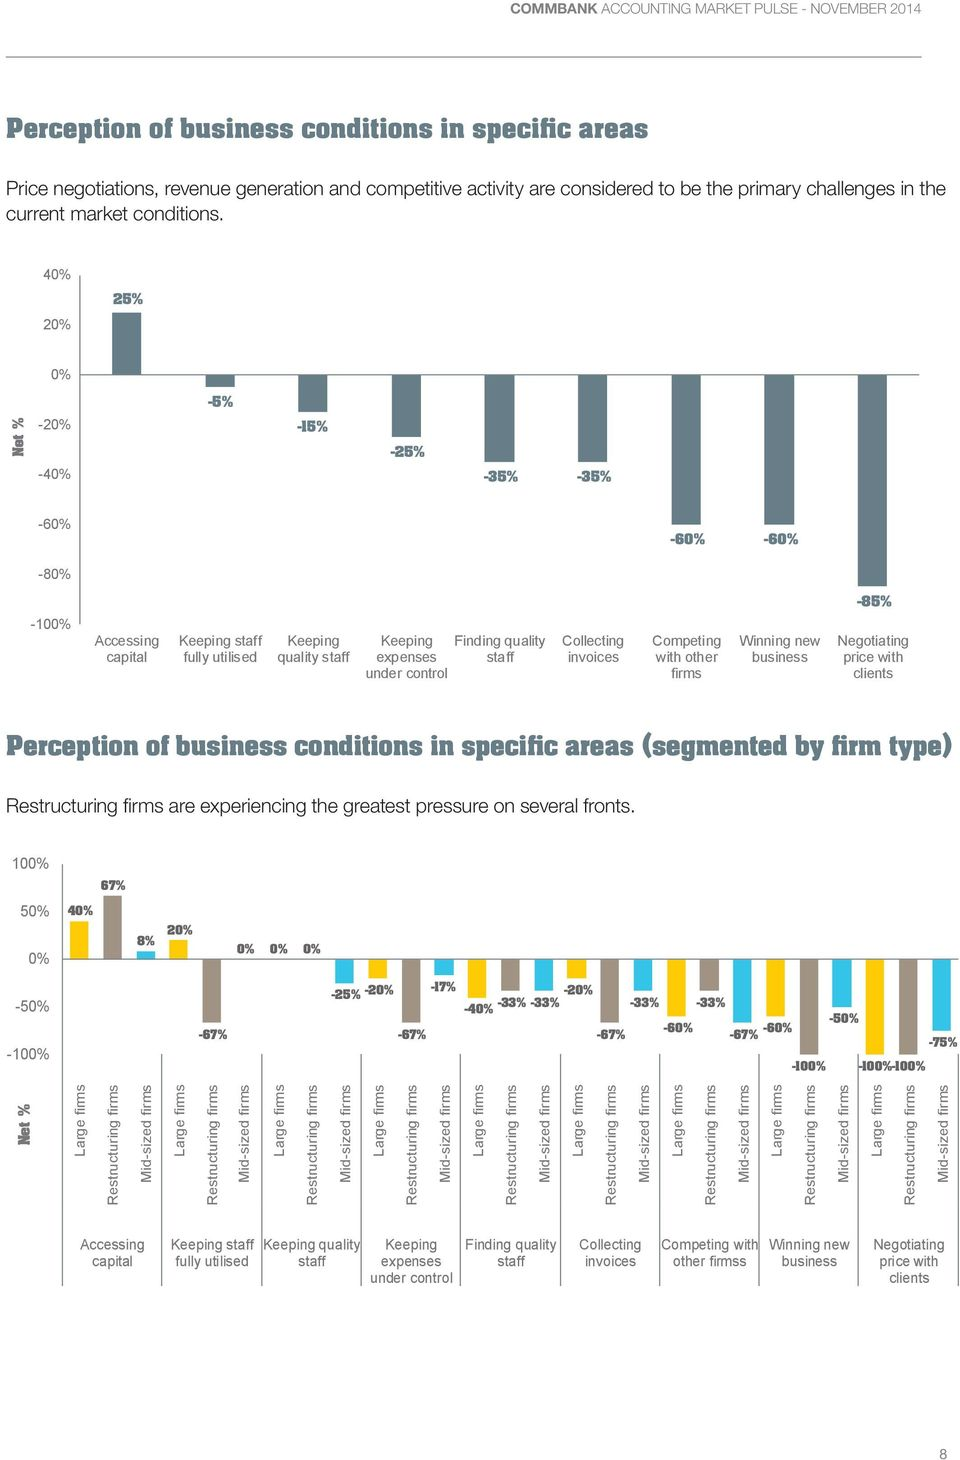 Competing with other Winning new business -85% Negotiating price with clients Perception of business conditions in specific areas (segmented by firm type) are experiencing the greatest pressure on